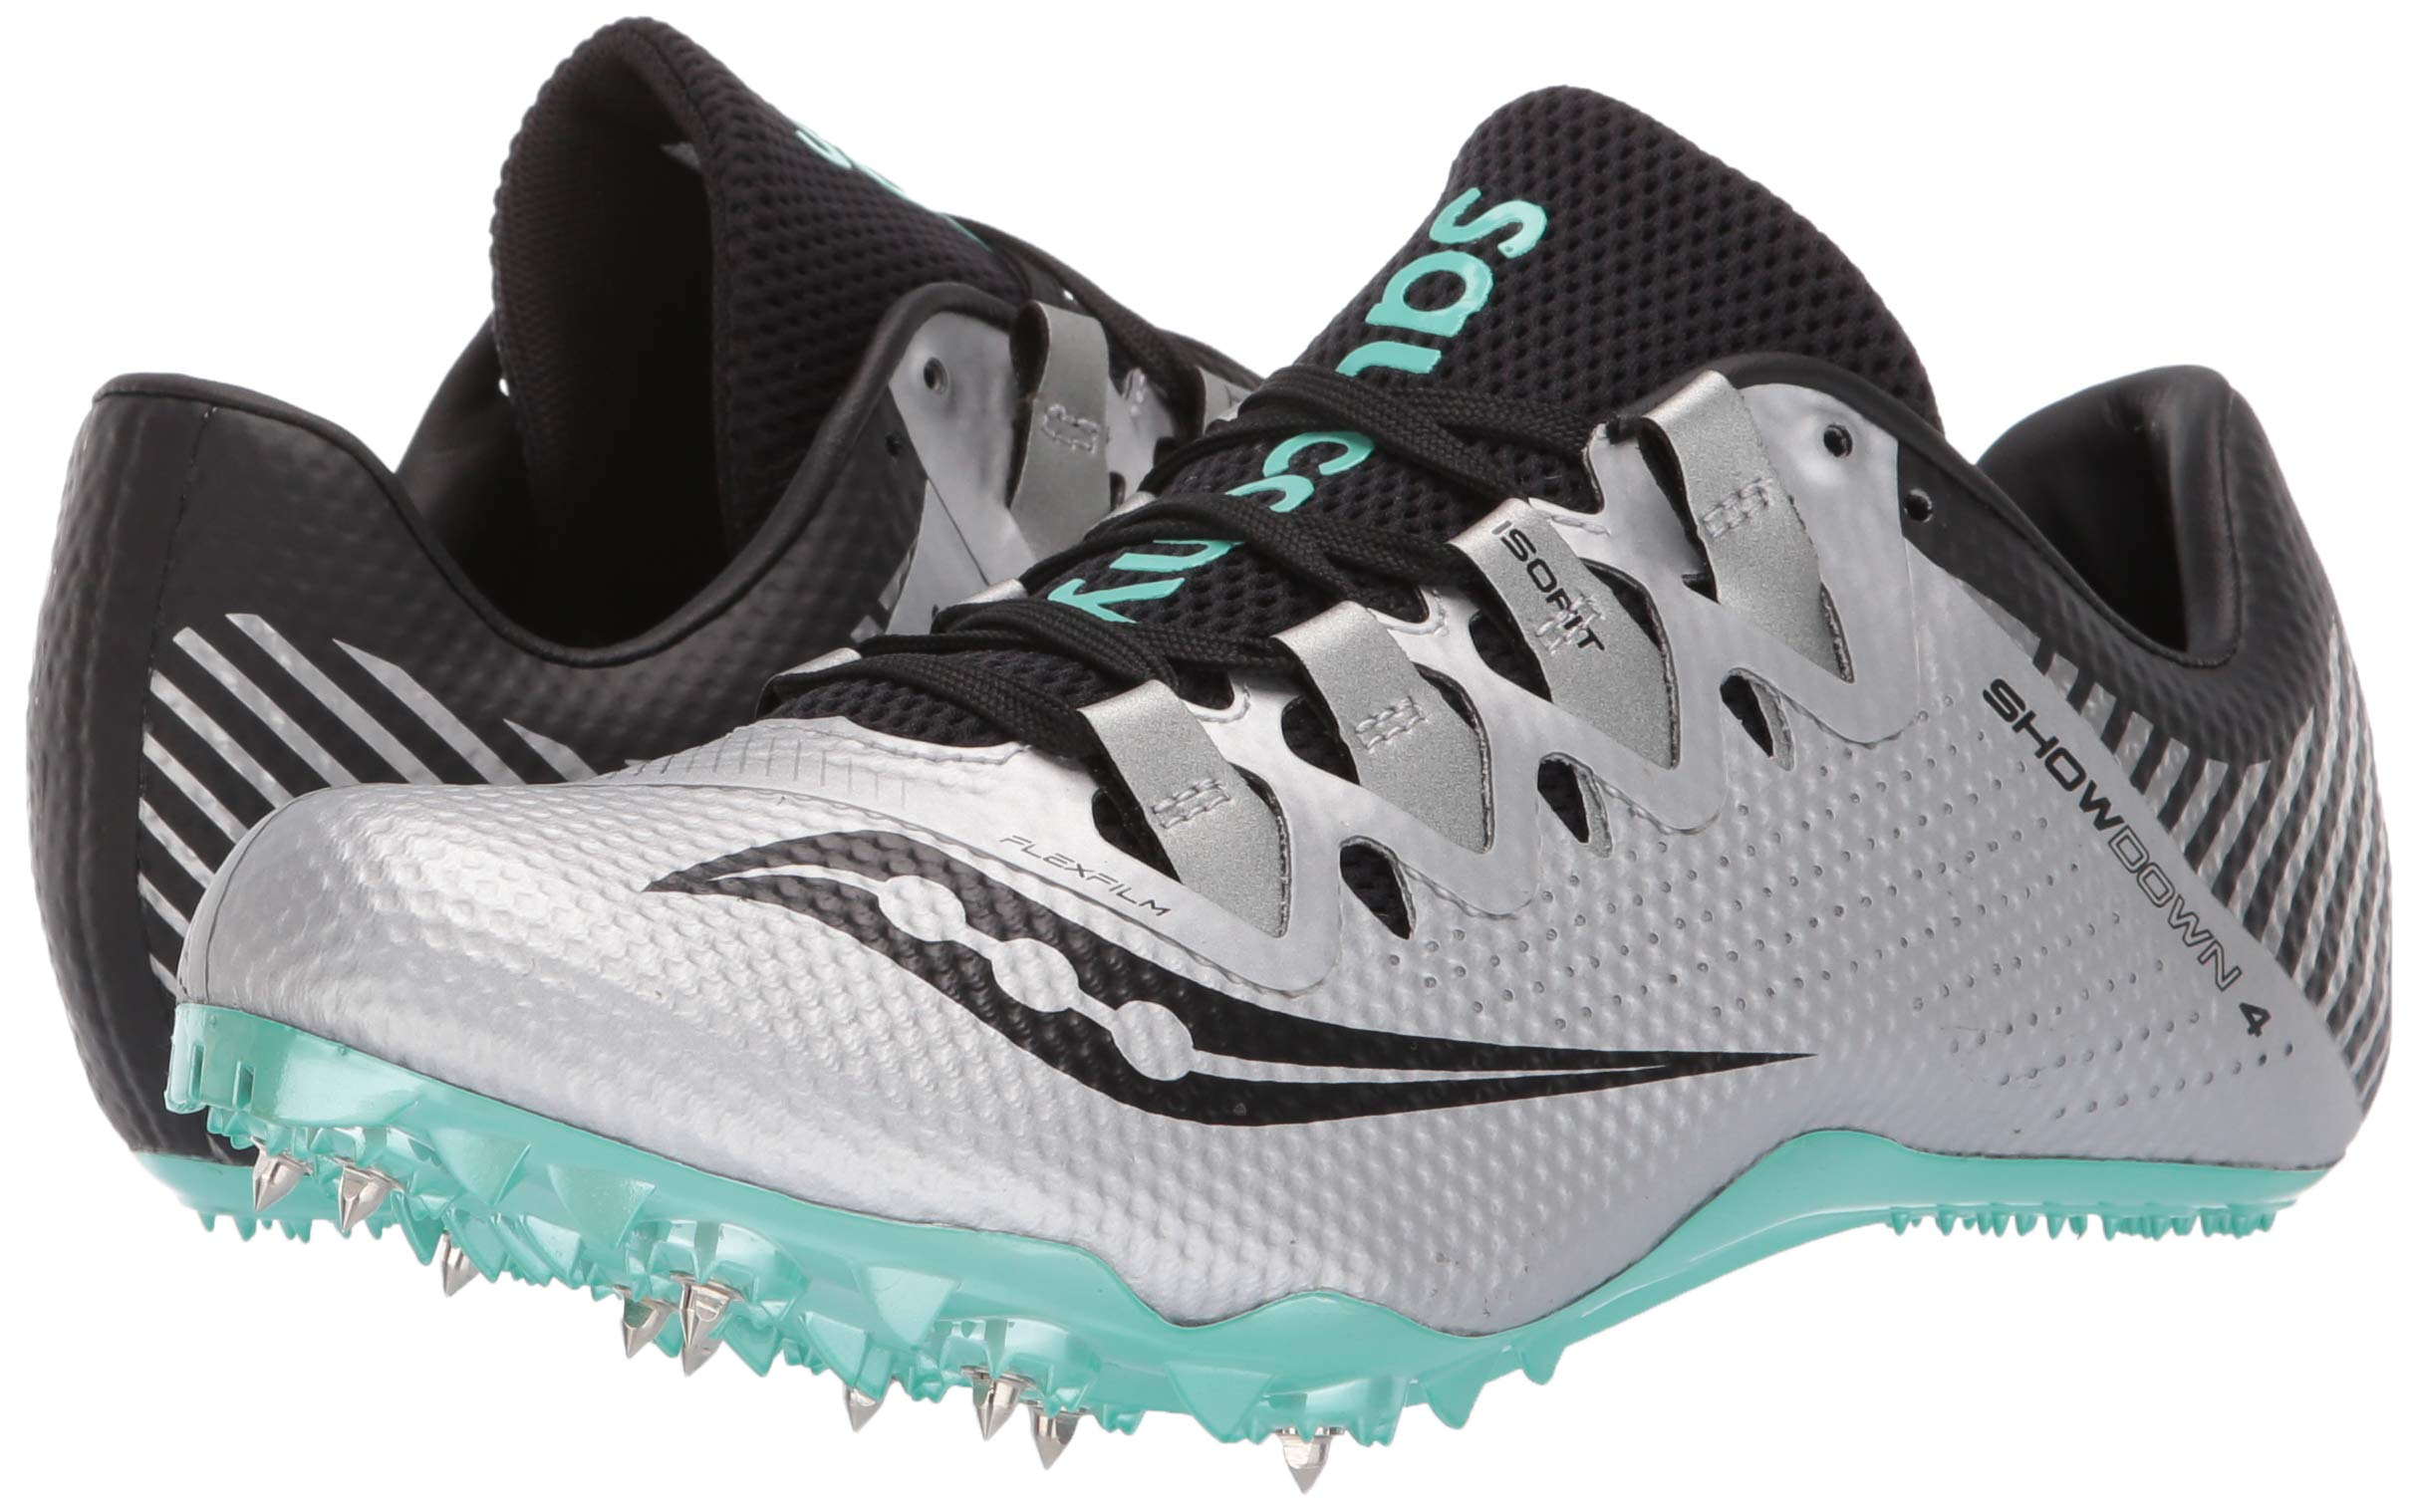 Saucony Women's Showdown 4 Track Shoe, Silver/Teal, 5 Medium US by Saucony (Image #6)